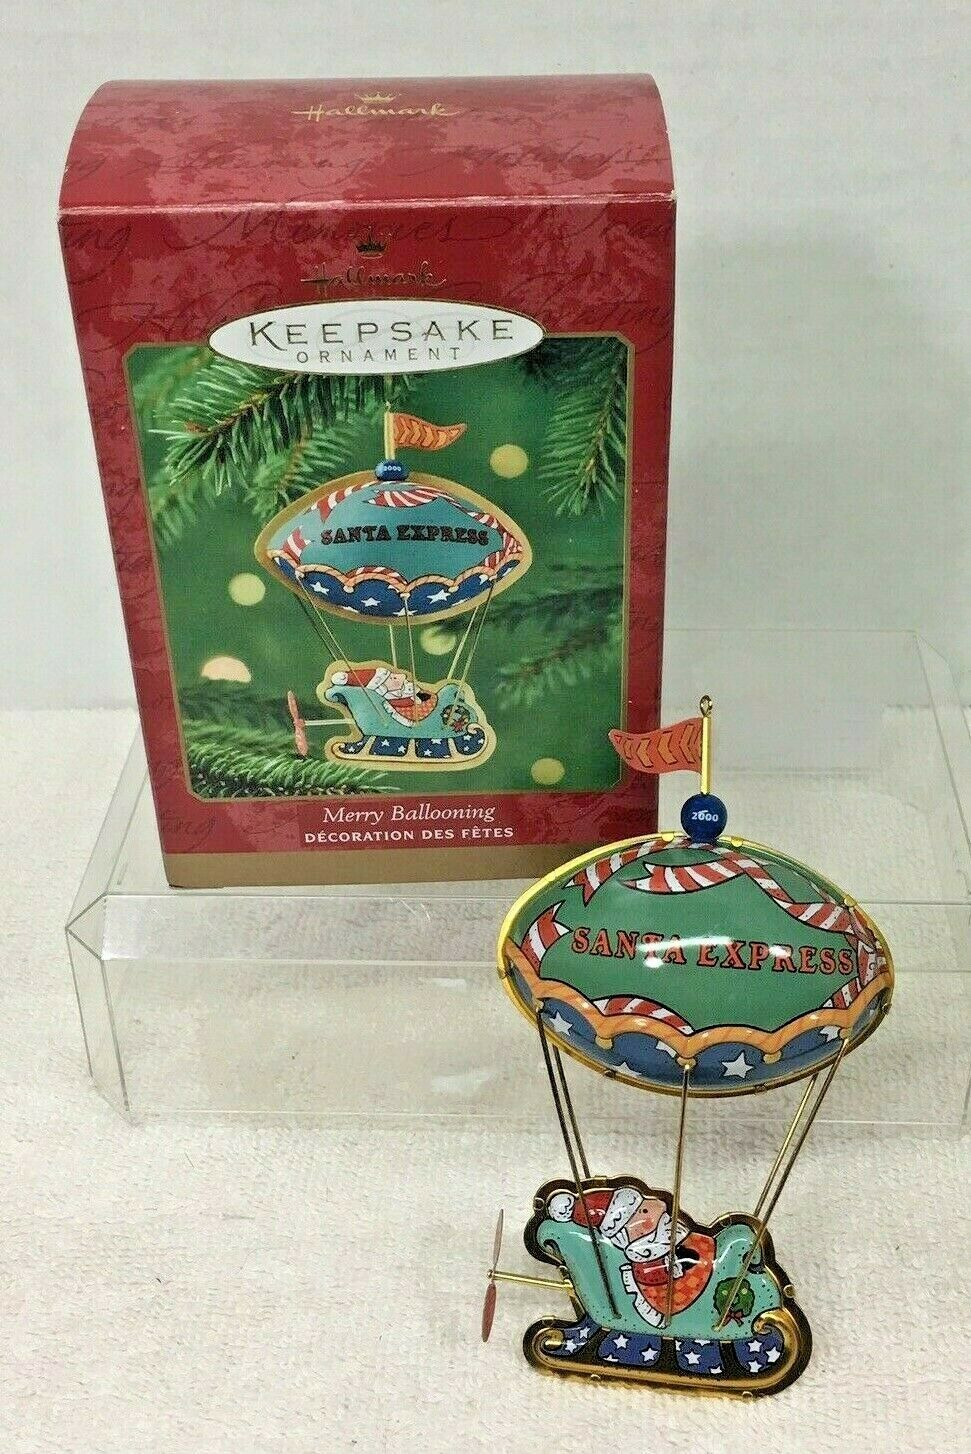 Primary image for 2000 Merry Ballooning Hallmark Christmas Tree Ornament MIB Price Tag Q3